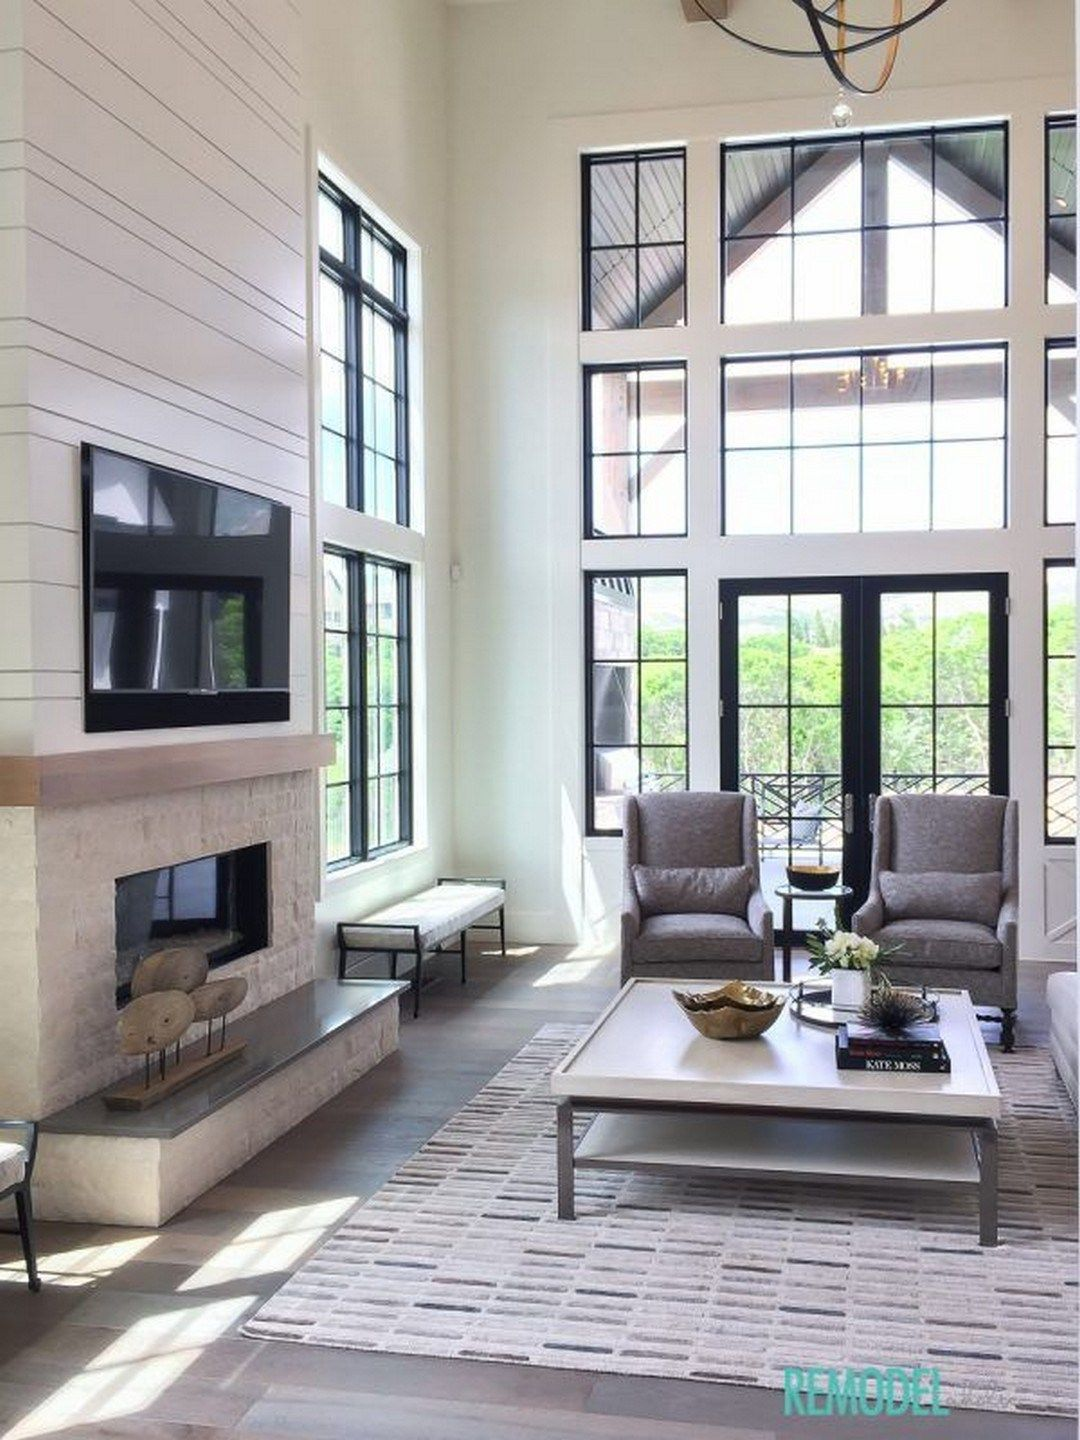 21 Modern Fireplaces Characteristics And Interior Decor Ideas